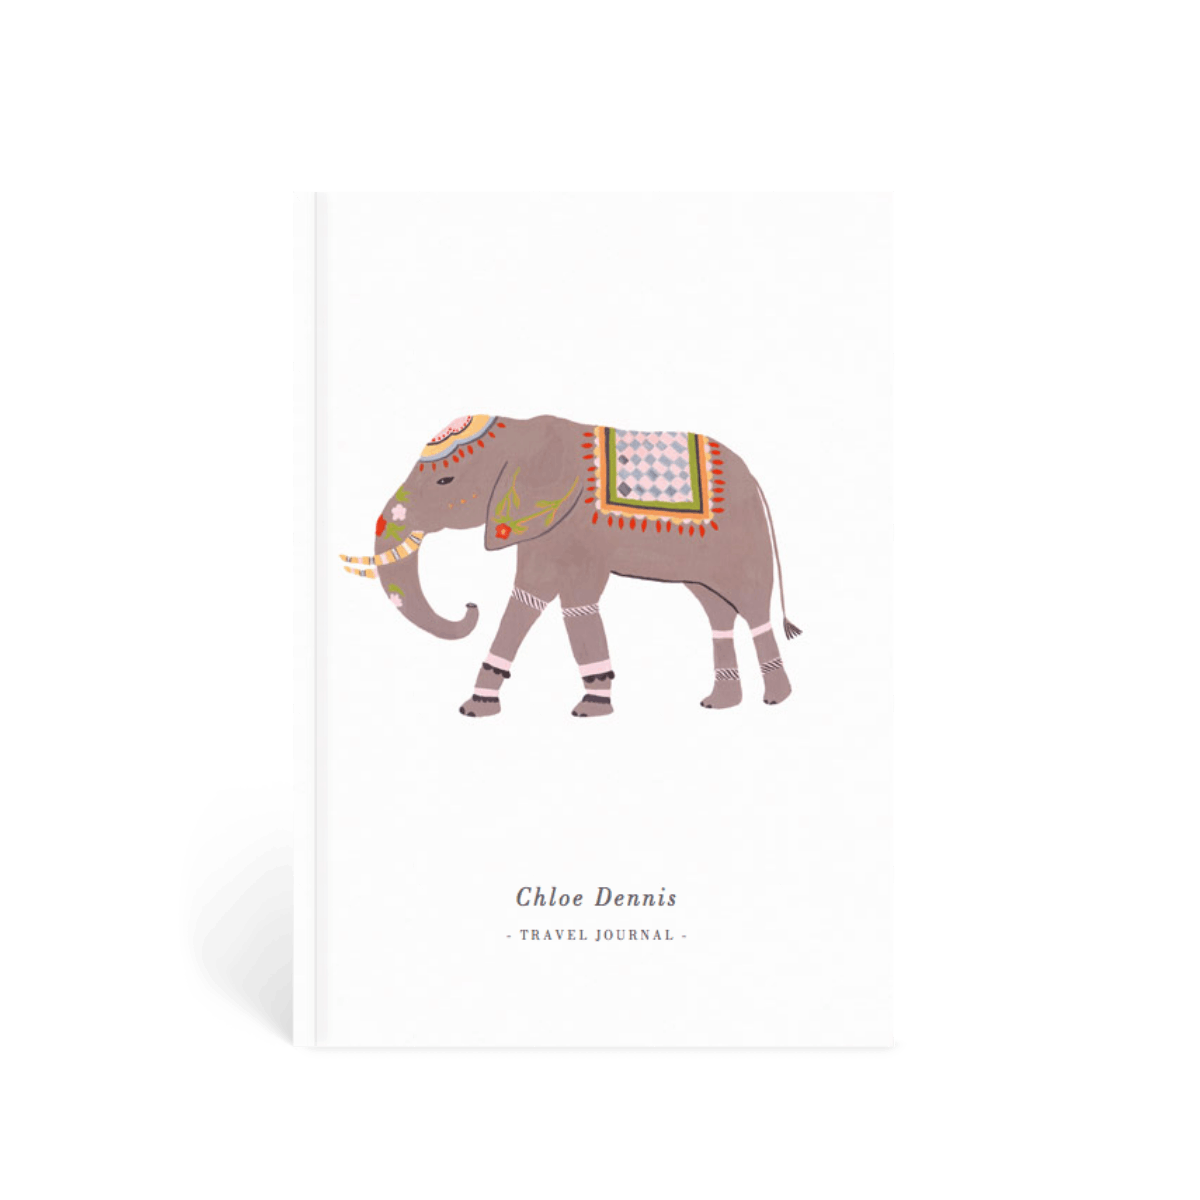 Https%3a%2f%2fwww.papier.com%2fproduct image%2f53823%2f25%2feastern elephant 12961 front 1542114085.png?ixlib=rb 1.1